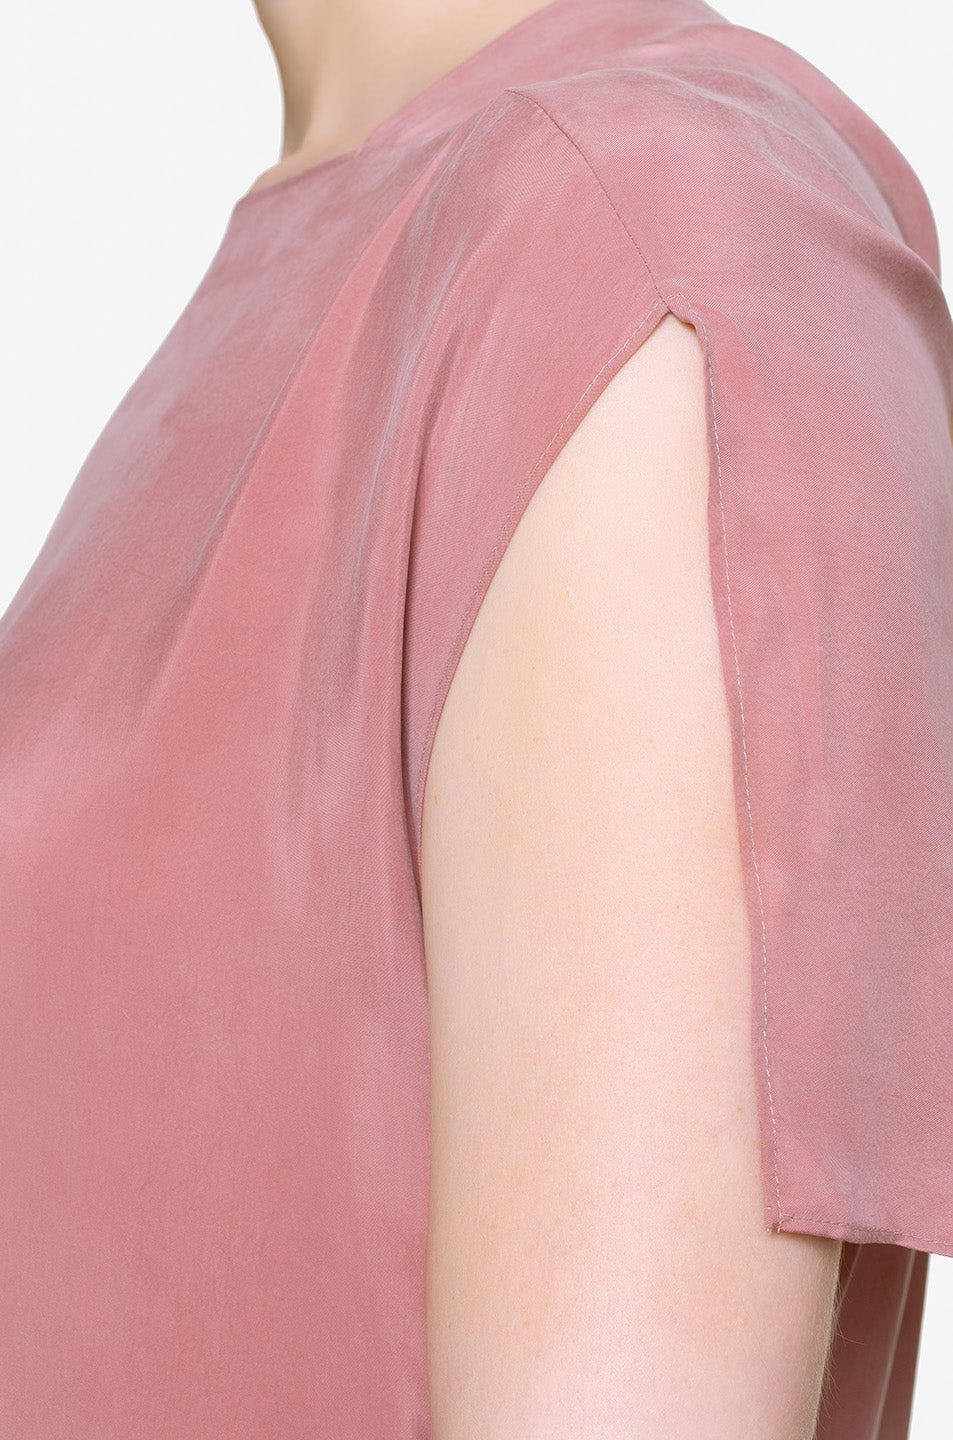 Pink Calabash Dress Sleeve